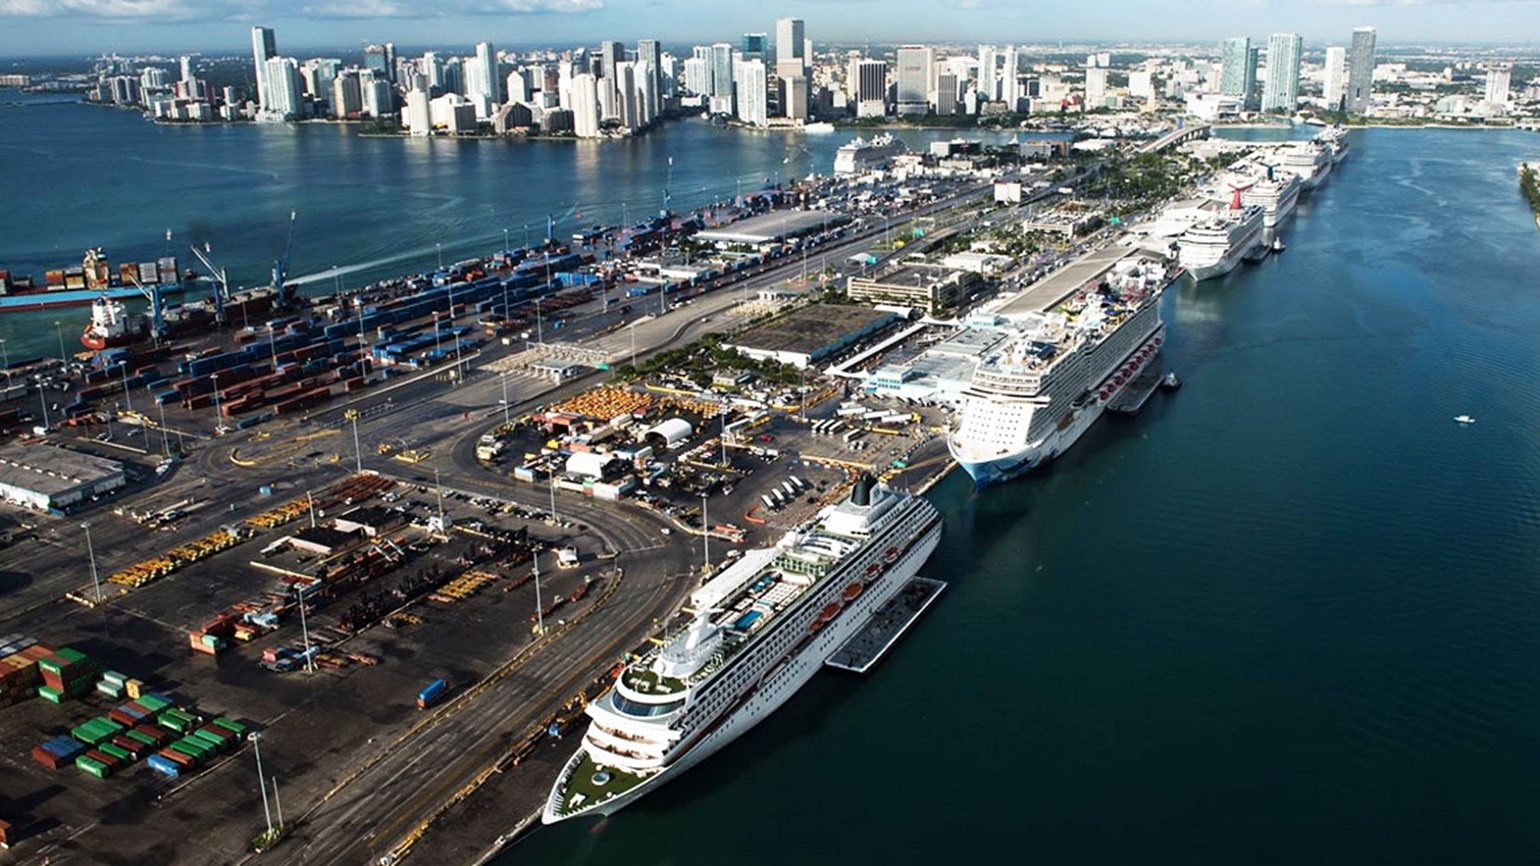 With expected delay in Miami port reopening, Carnival alters cruises